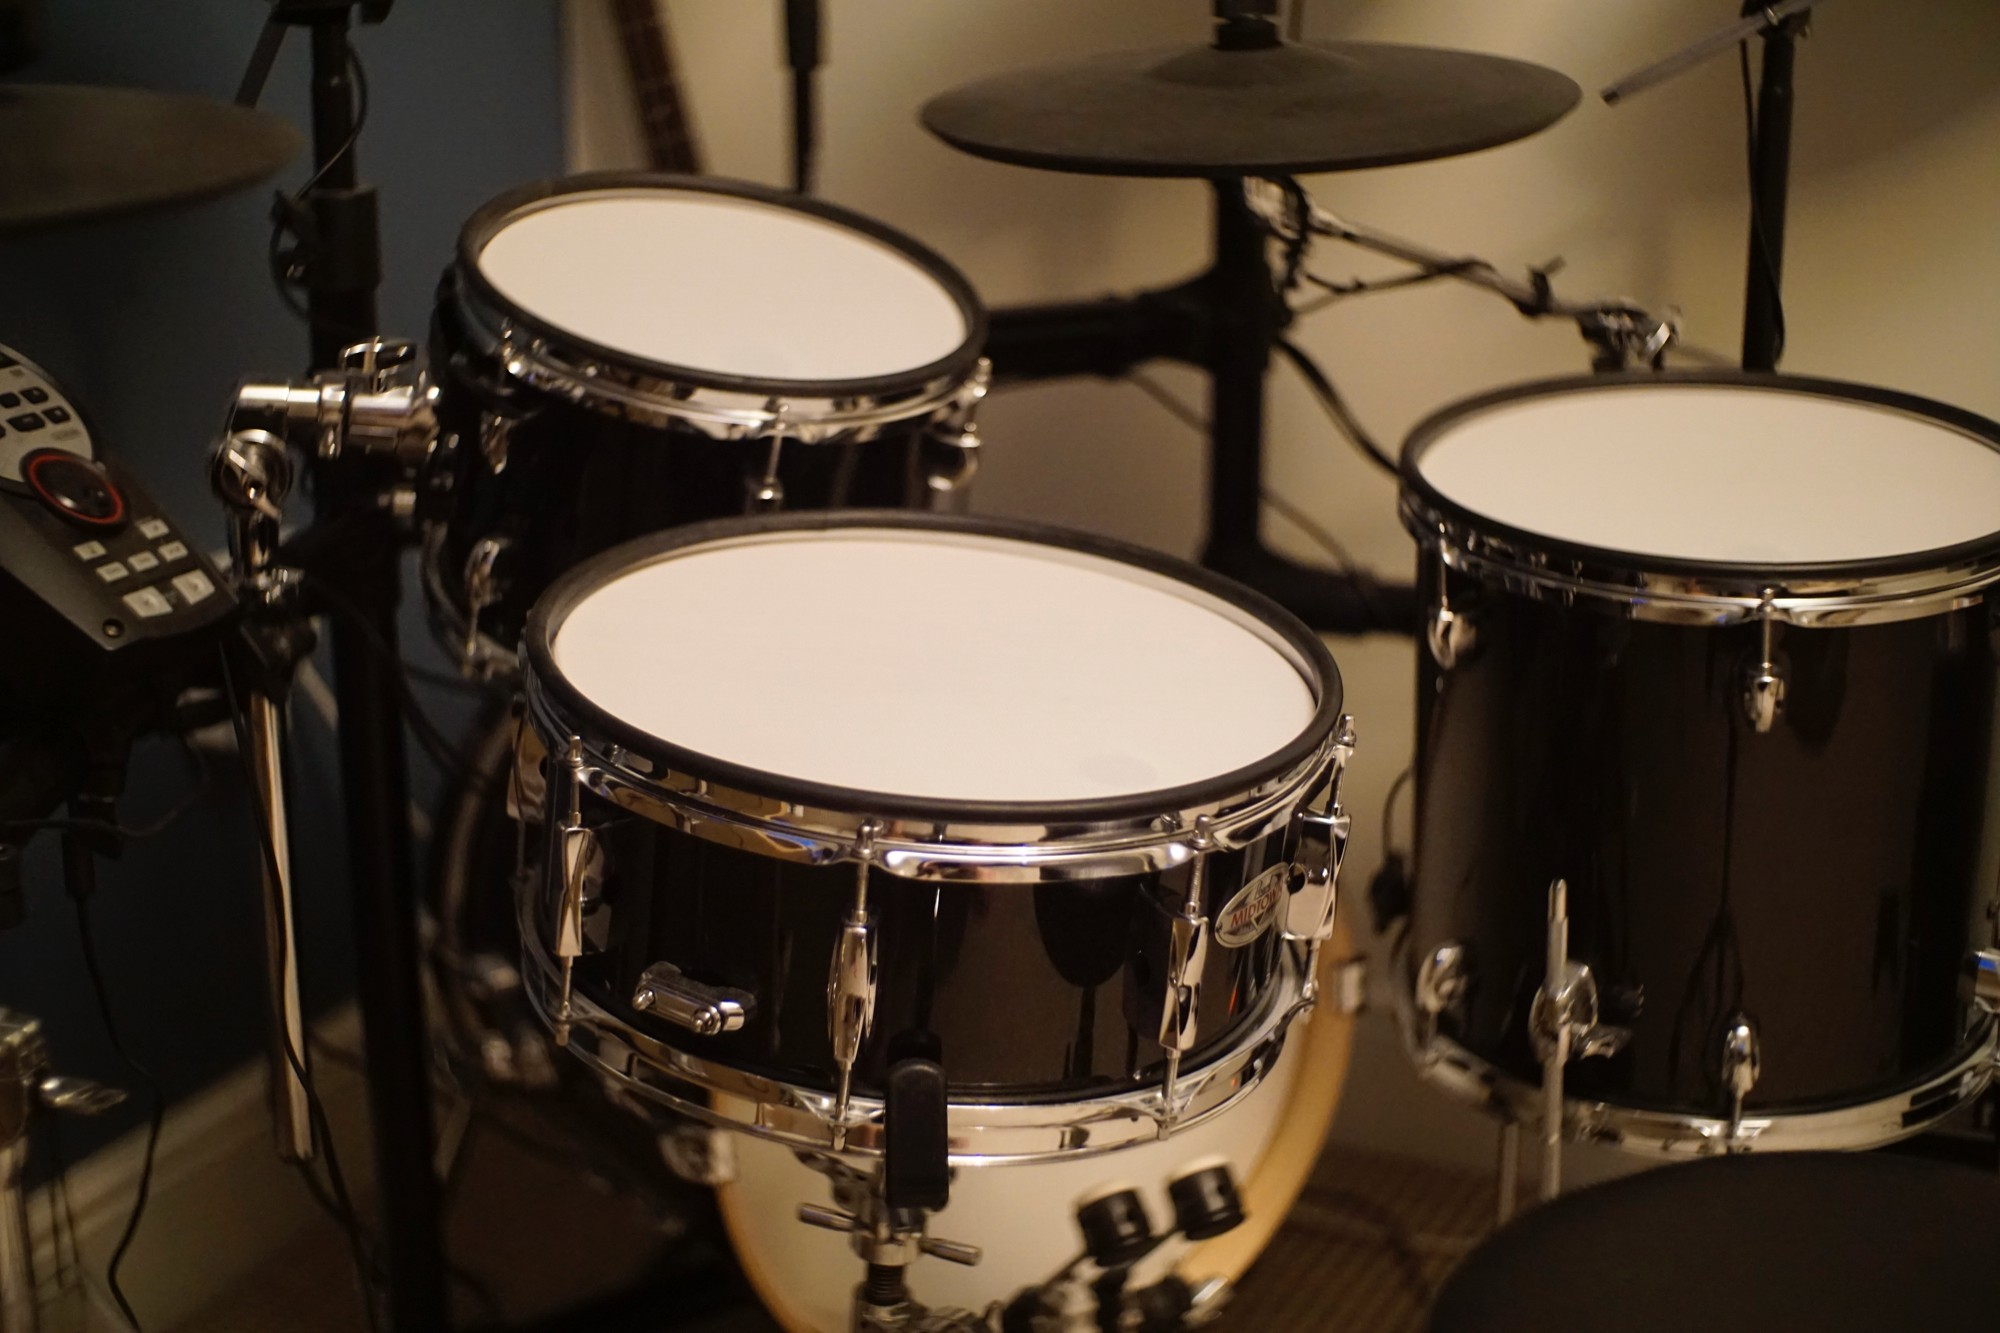 How To Build a DIY Electronic Drum Kit